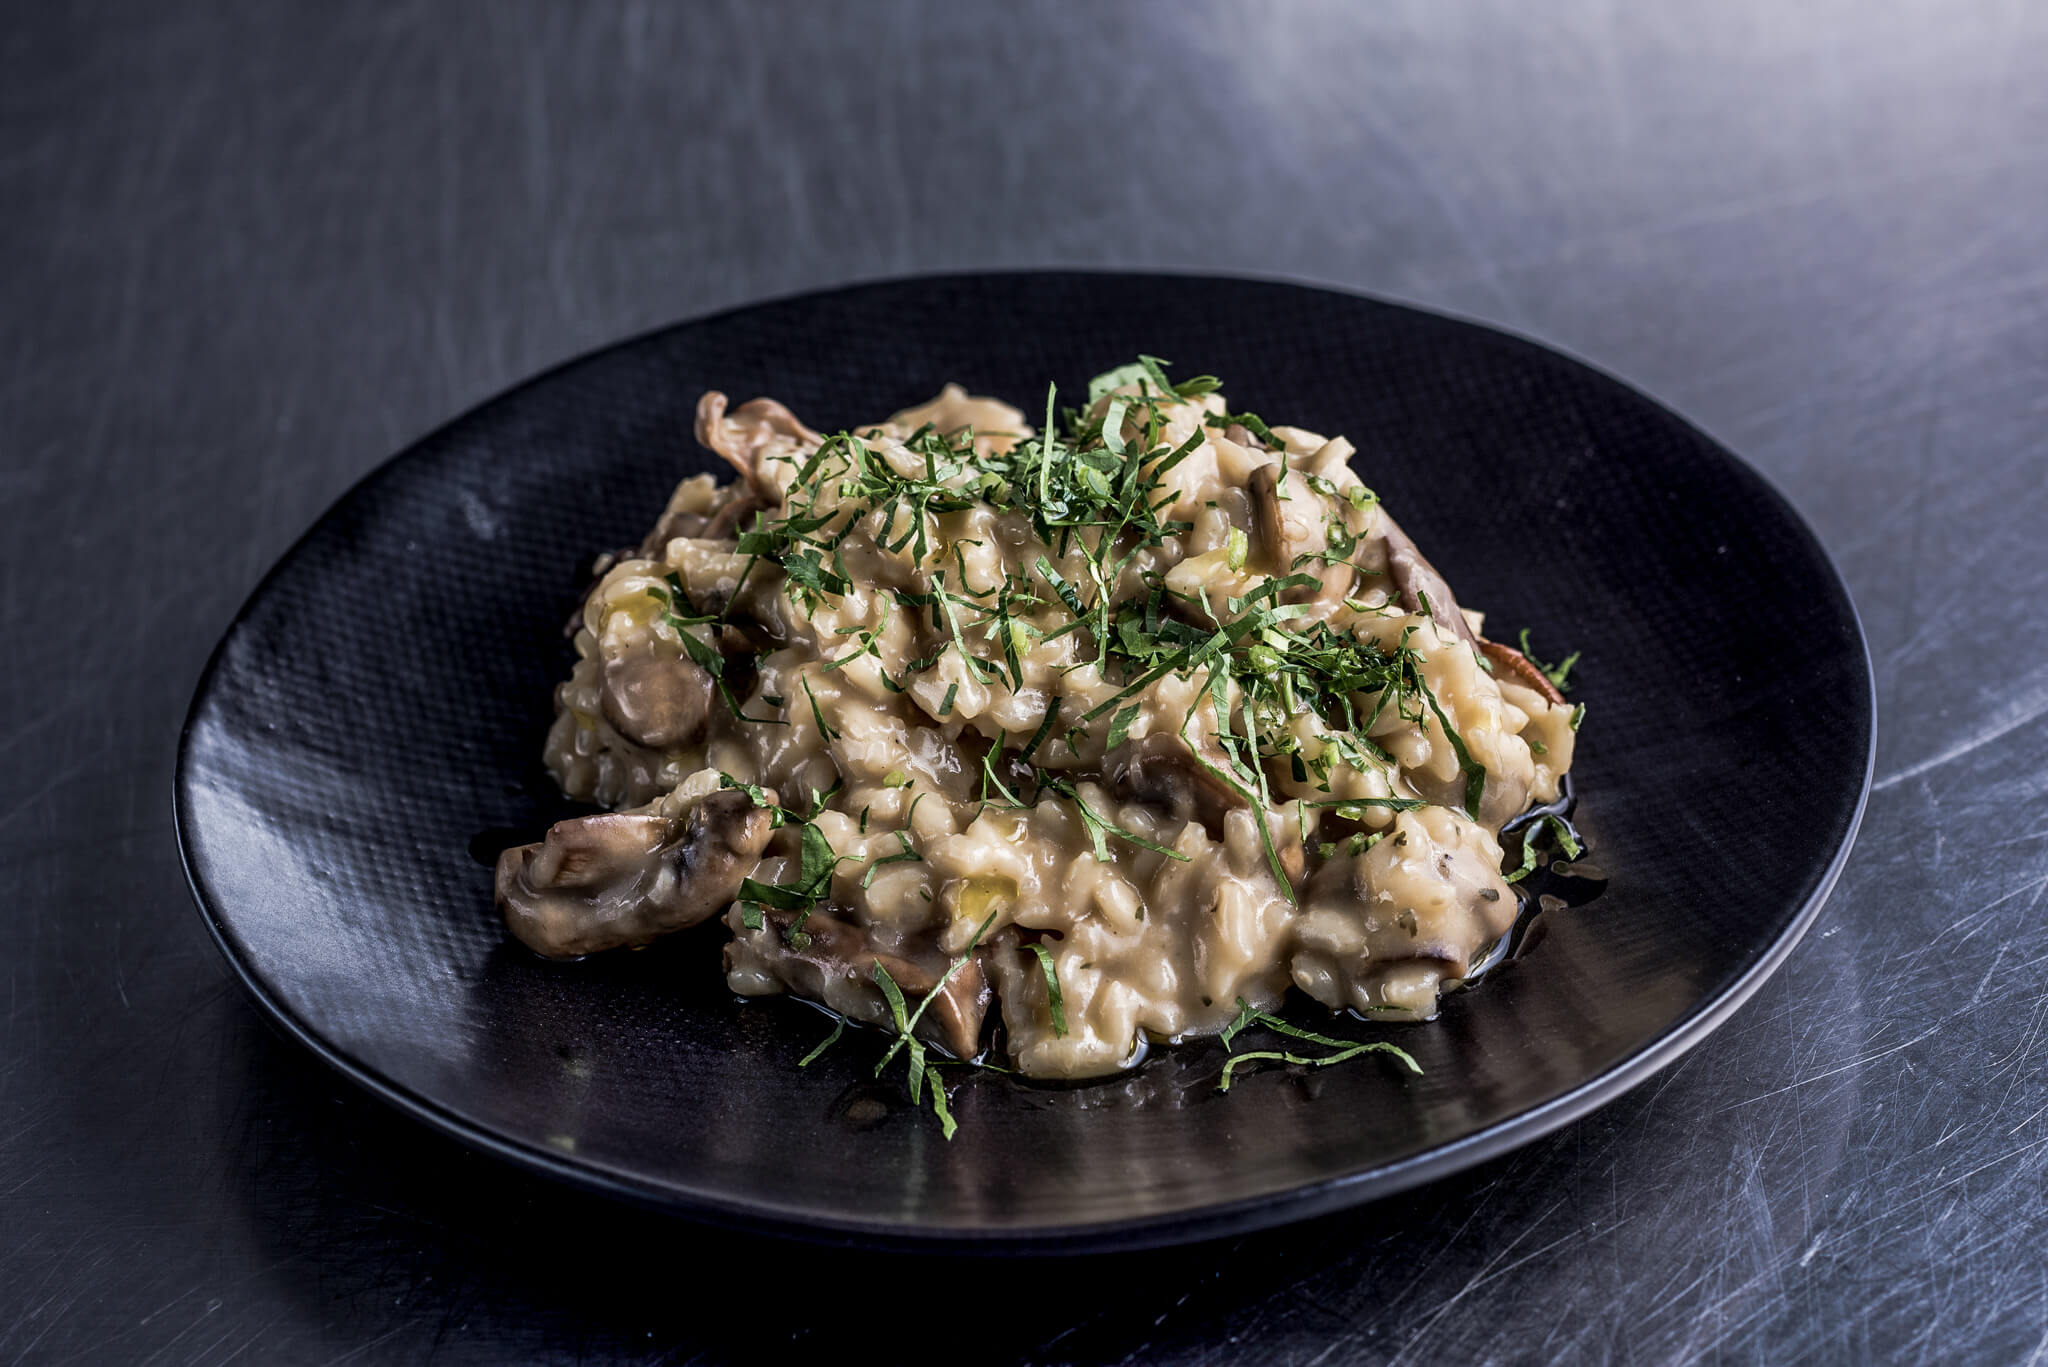 mushroom for cooking and eating in a restaurant